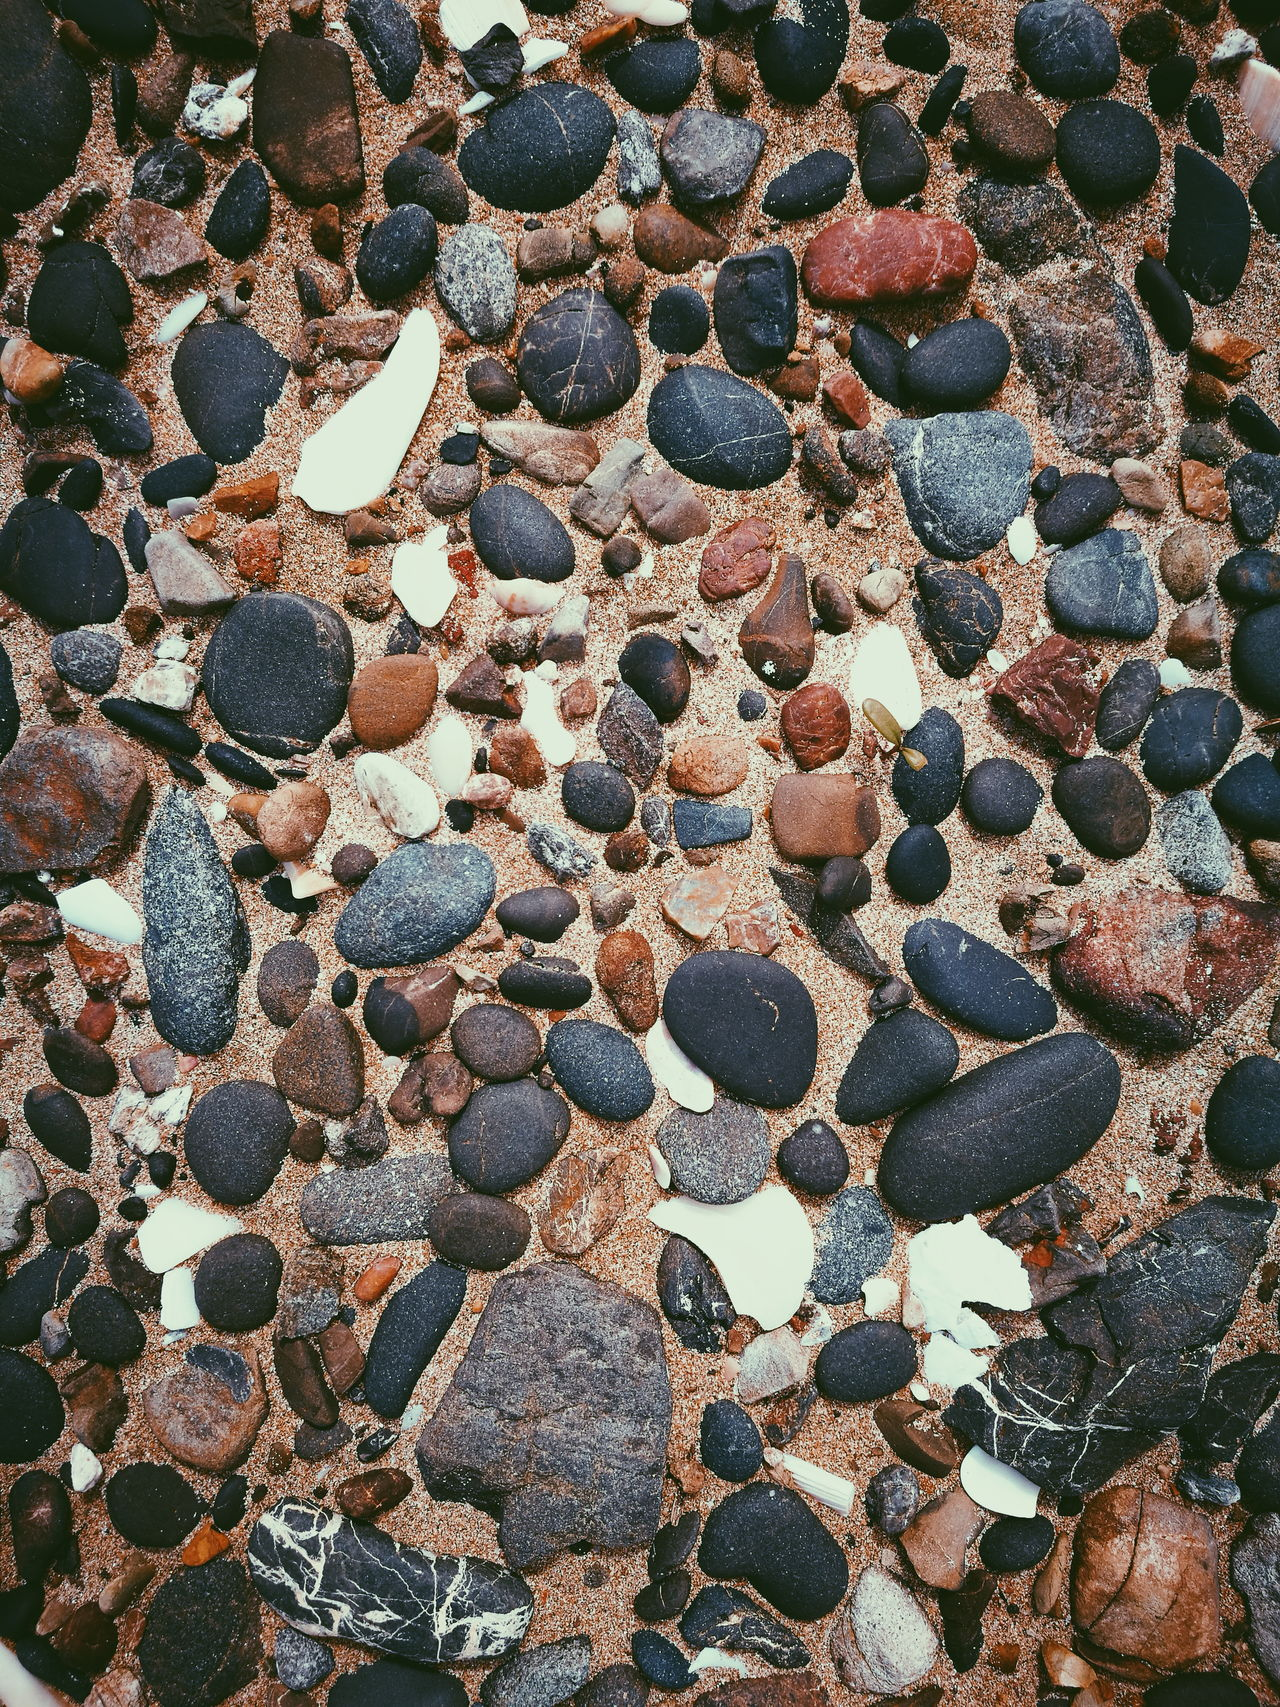 Under foot Stones Pebbles On A Beach Birds Eye View Backgrounds Stone - Object Full Frame Beach High Angle View Textured  Abundance Close-up Sand Pebble Day Outdoors Nature Large Group Of Objects Creativity No People Shore Multi Colored Extreme Close Up Texture In Nature Stones & Water